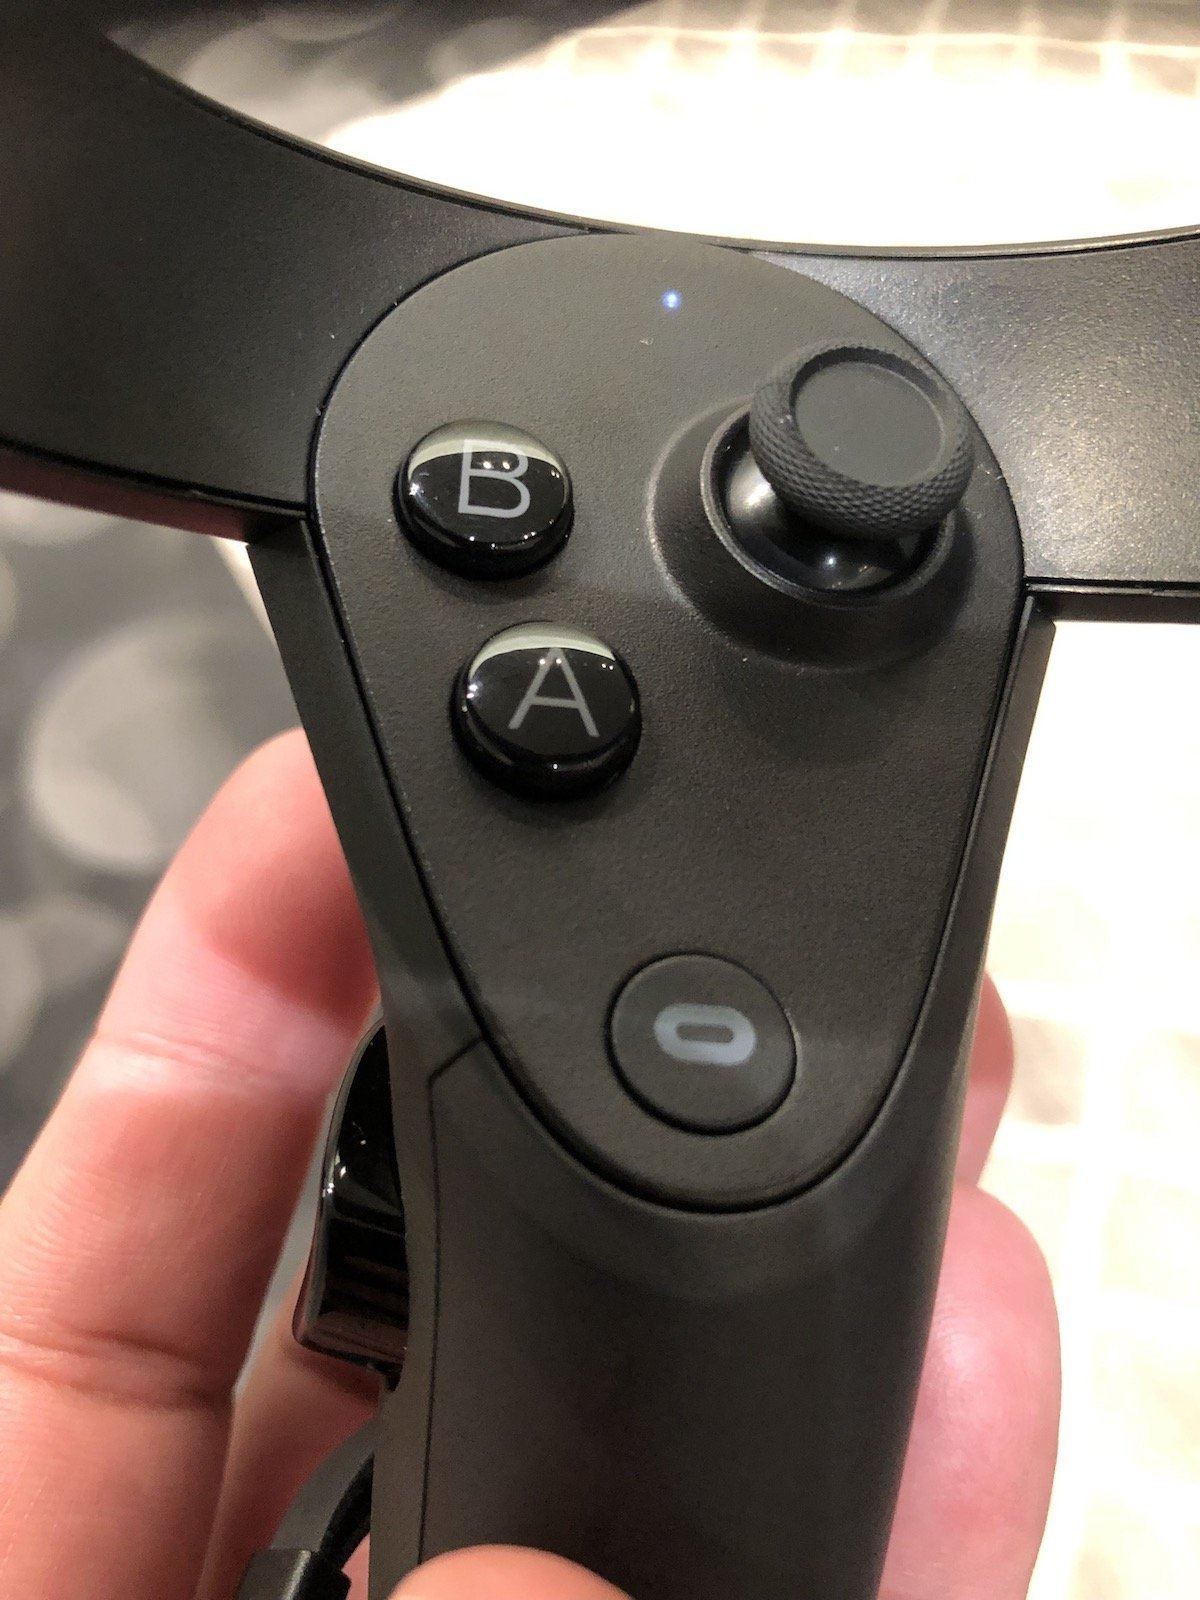 Rift S will support the newly redesigned Oculus Touch controllers.